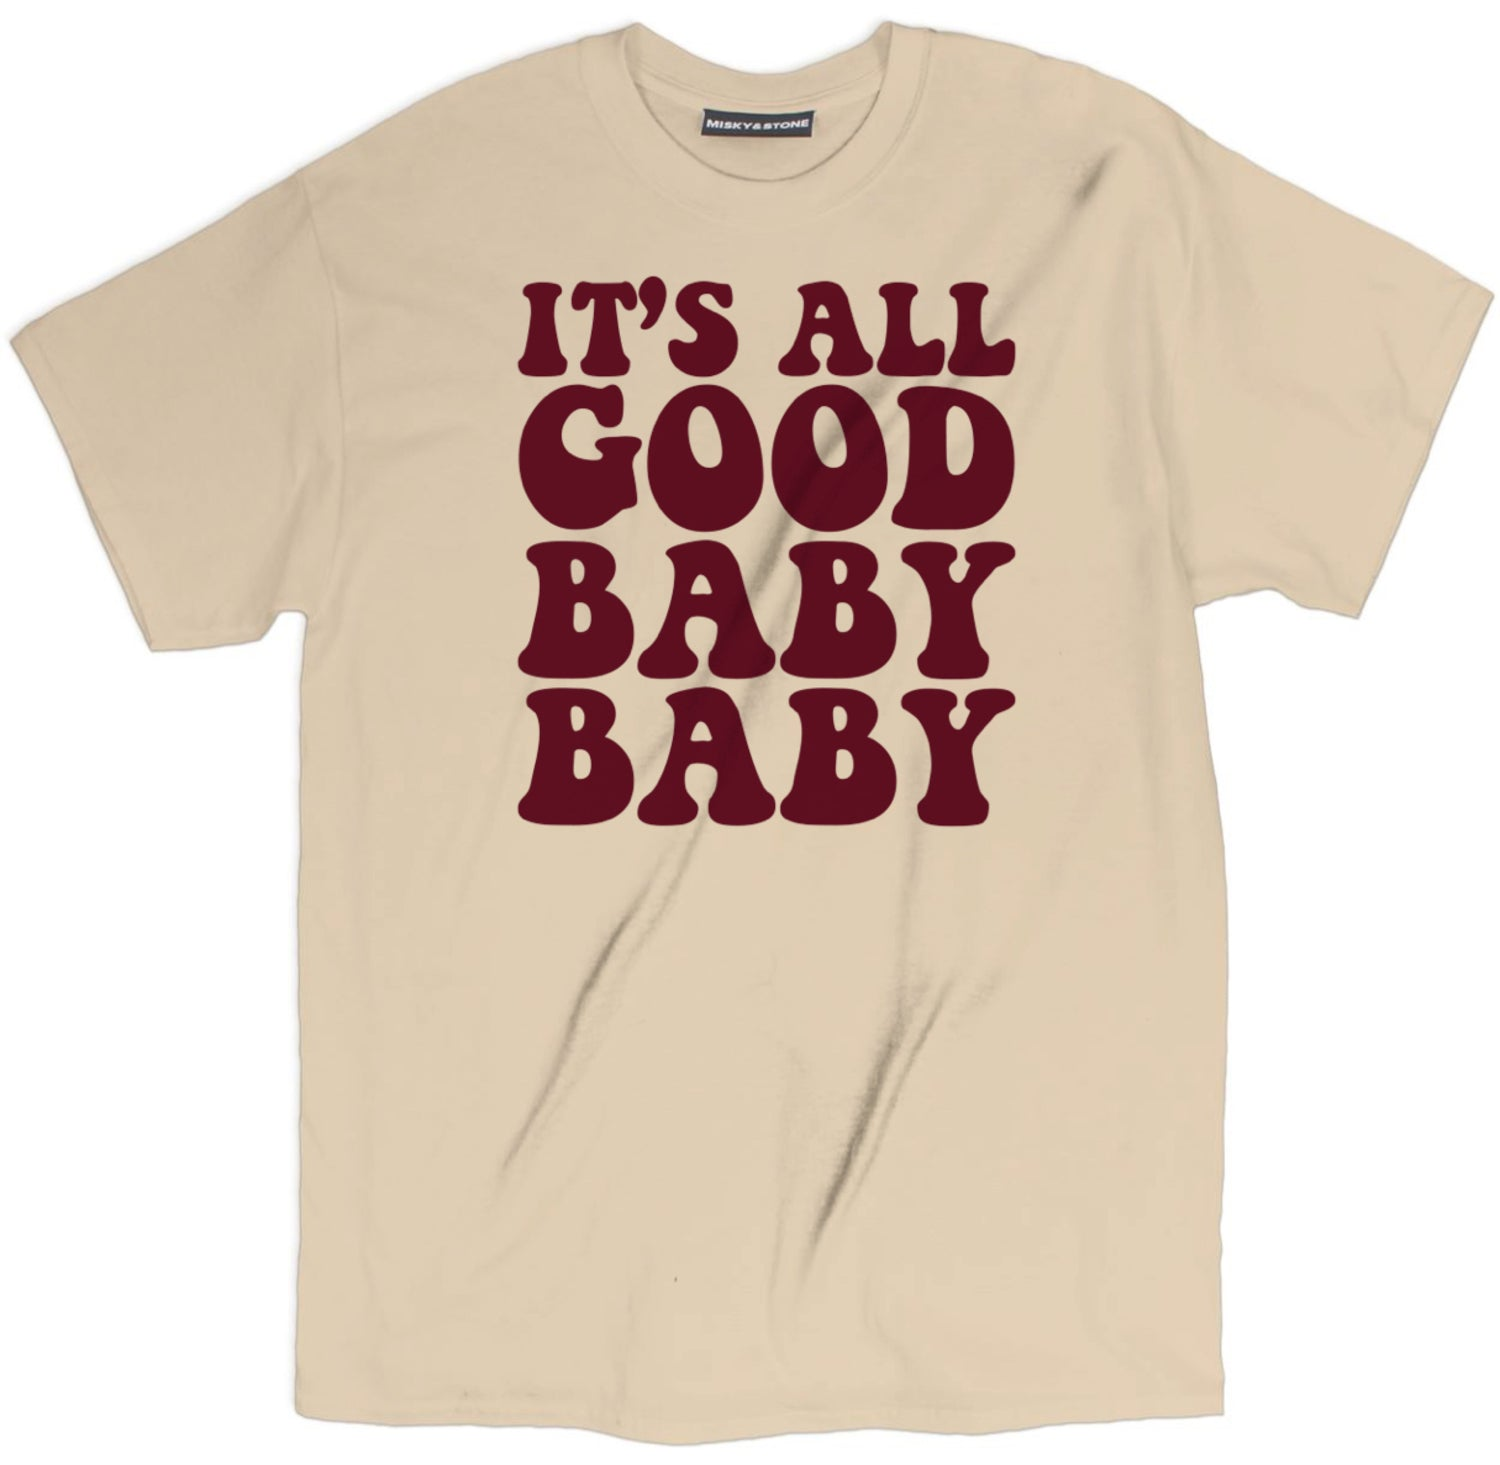 its all good baby baby shirt, funny shirts with sayings, funny t shirt sayings, shirts with sayings, funny t shirt quotes, t shirt quotes, tee shirts with sayings, tee shirt quotes, quote tees, hilarious t shirt sayings, funny tee shirt sayings, t shirts with sayings on them,